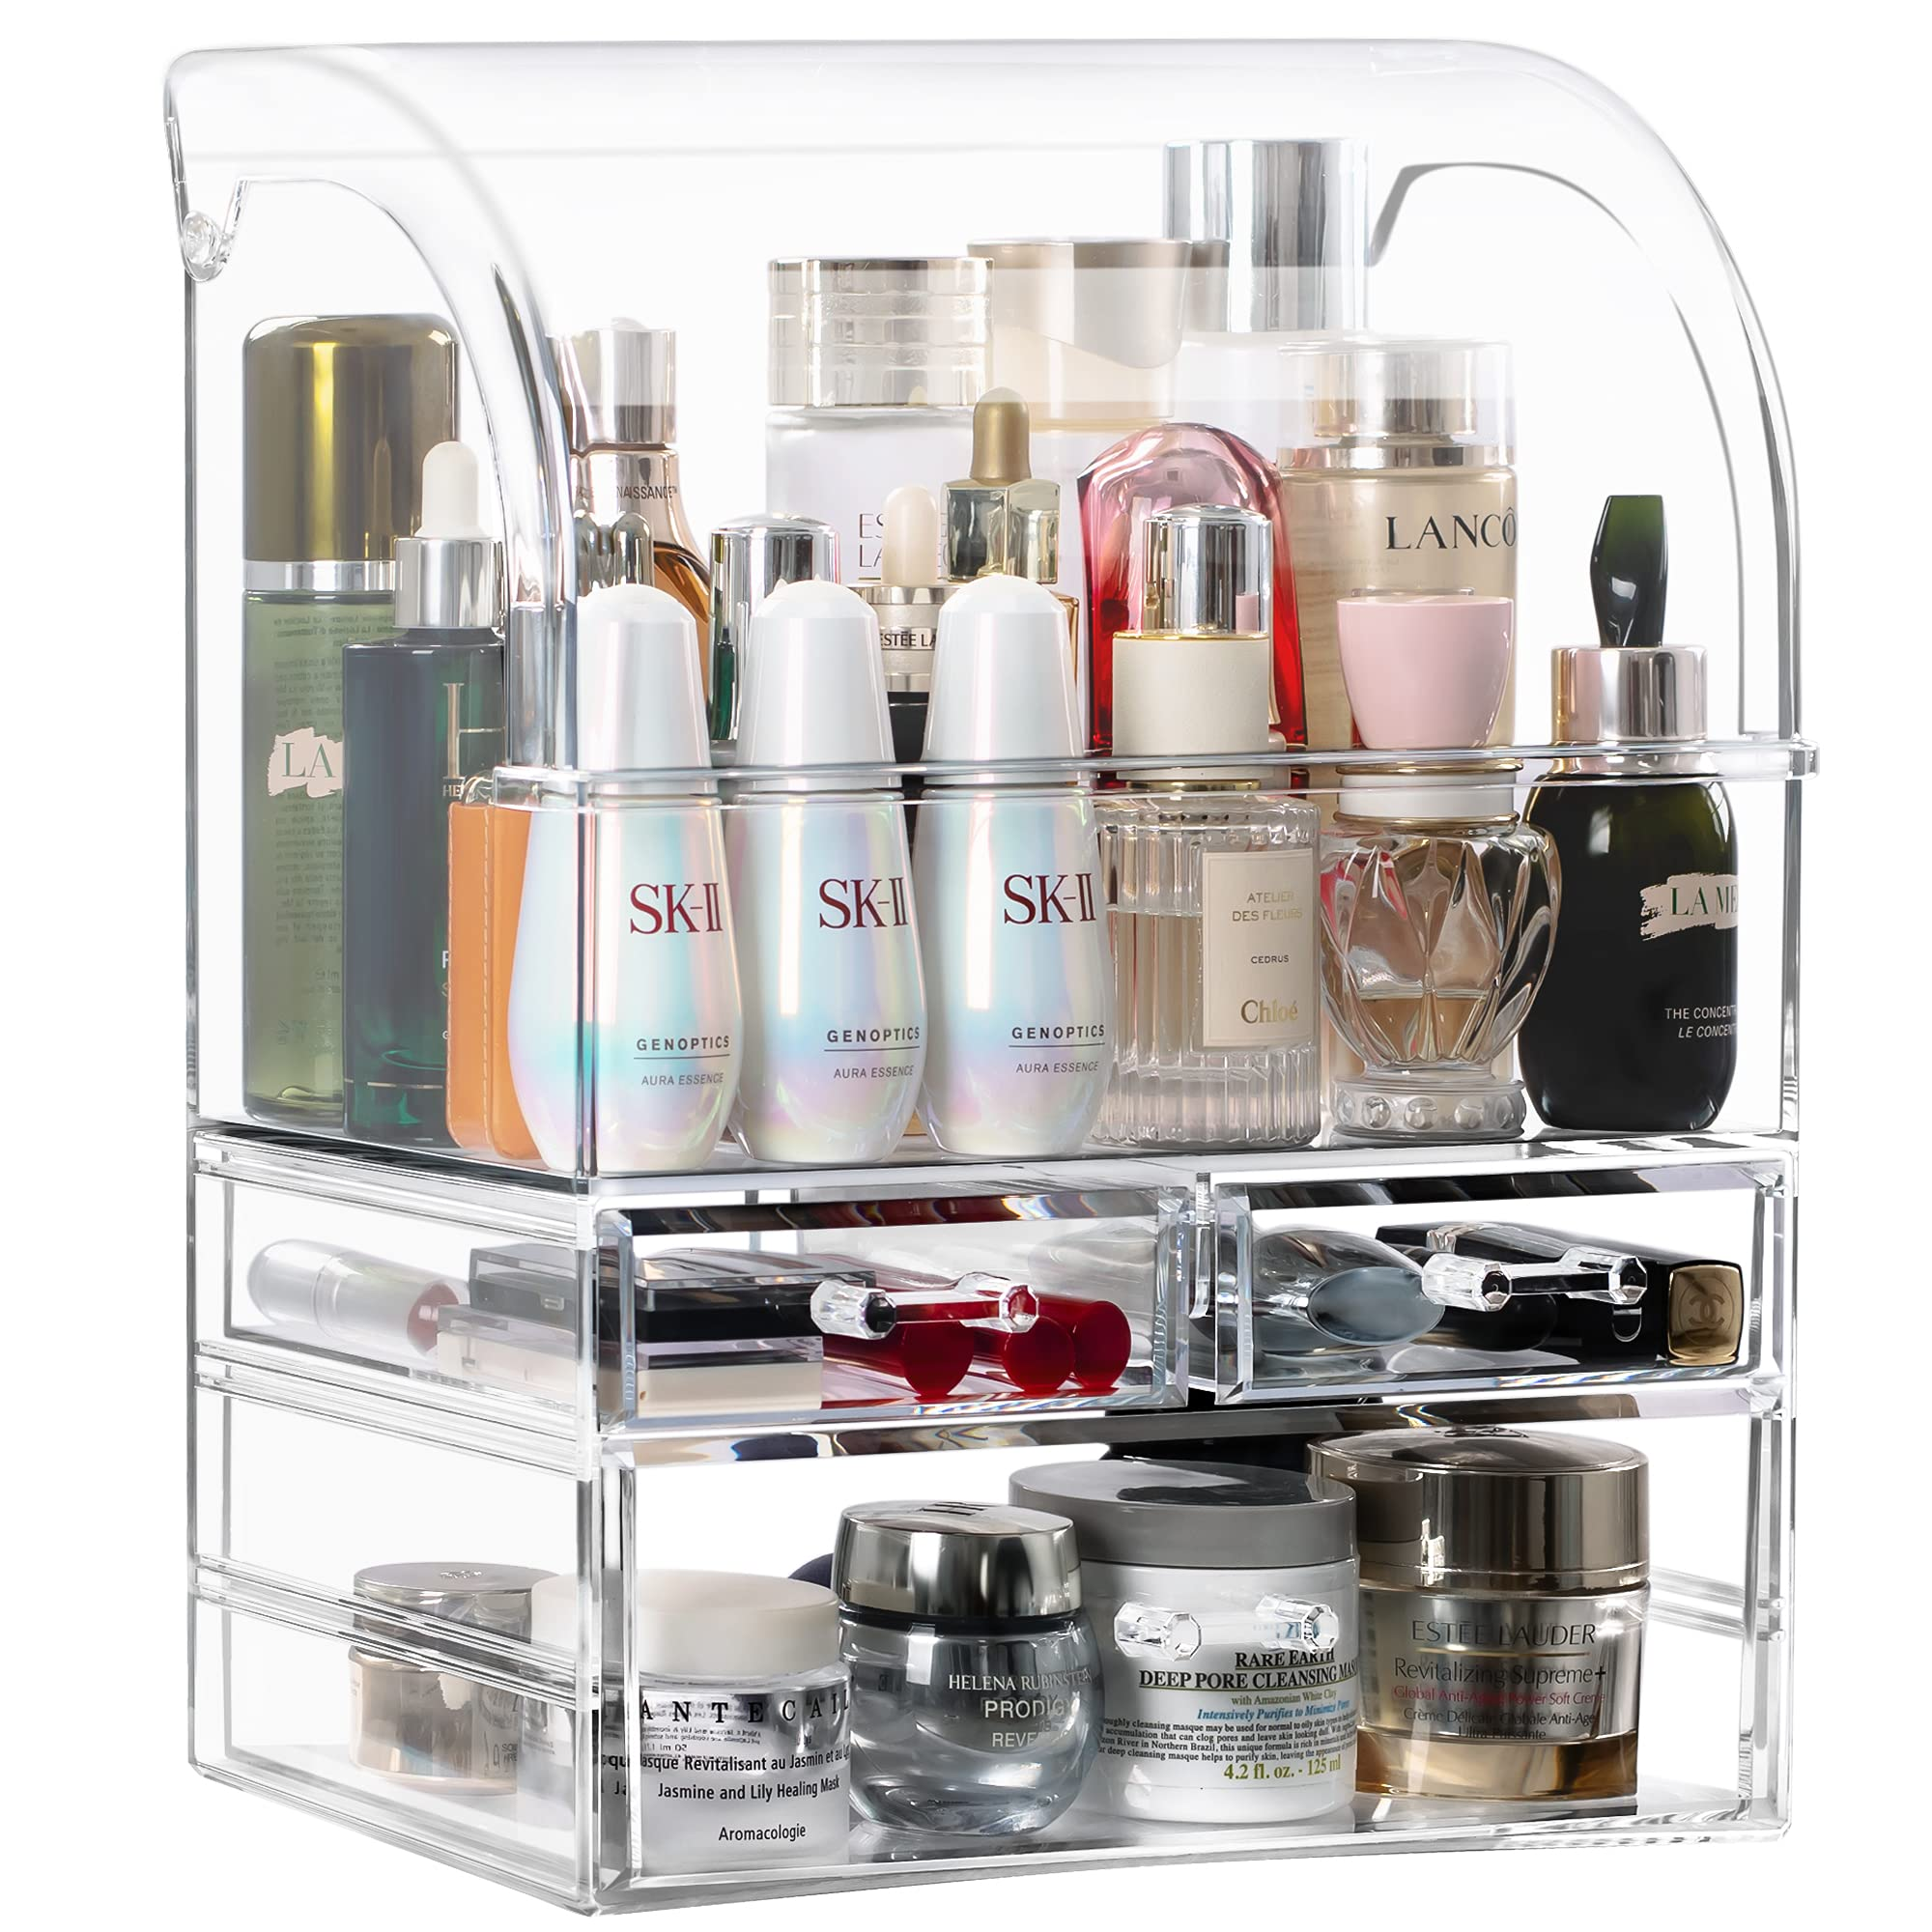 T-SIGN Large Makeup Organizer Storage, Acrylic Cosmetics Display Cases, Perfume Dustproof Waterproof Skin Care Organizer for Counter Dresser, Lipsticks, Skincare Products, Clear